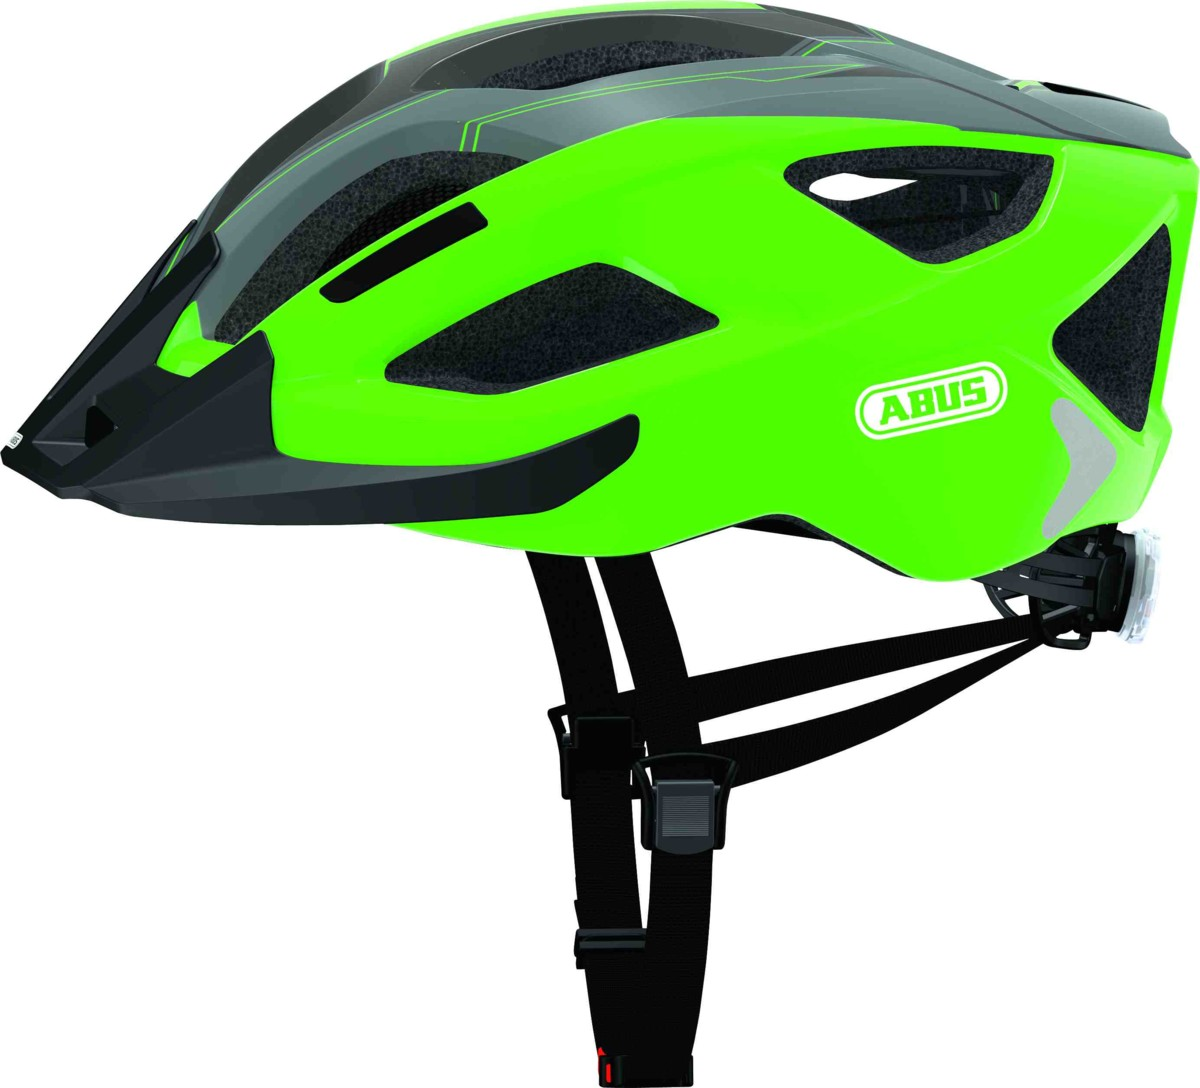 Aduro 2.0 race green L